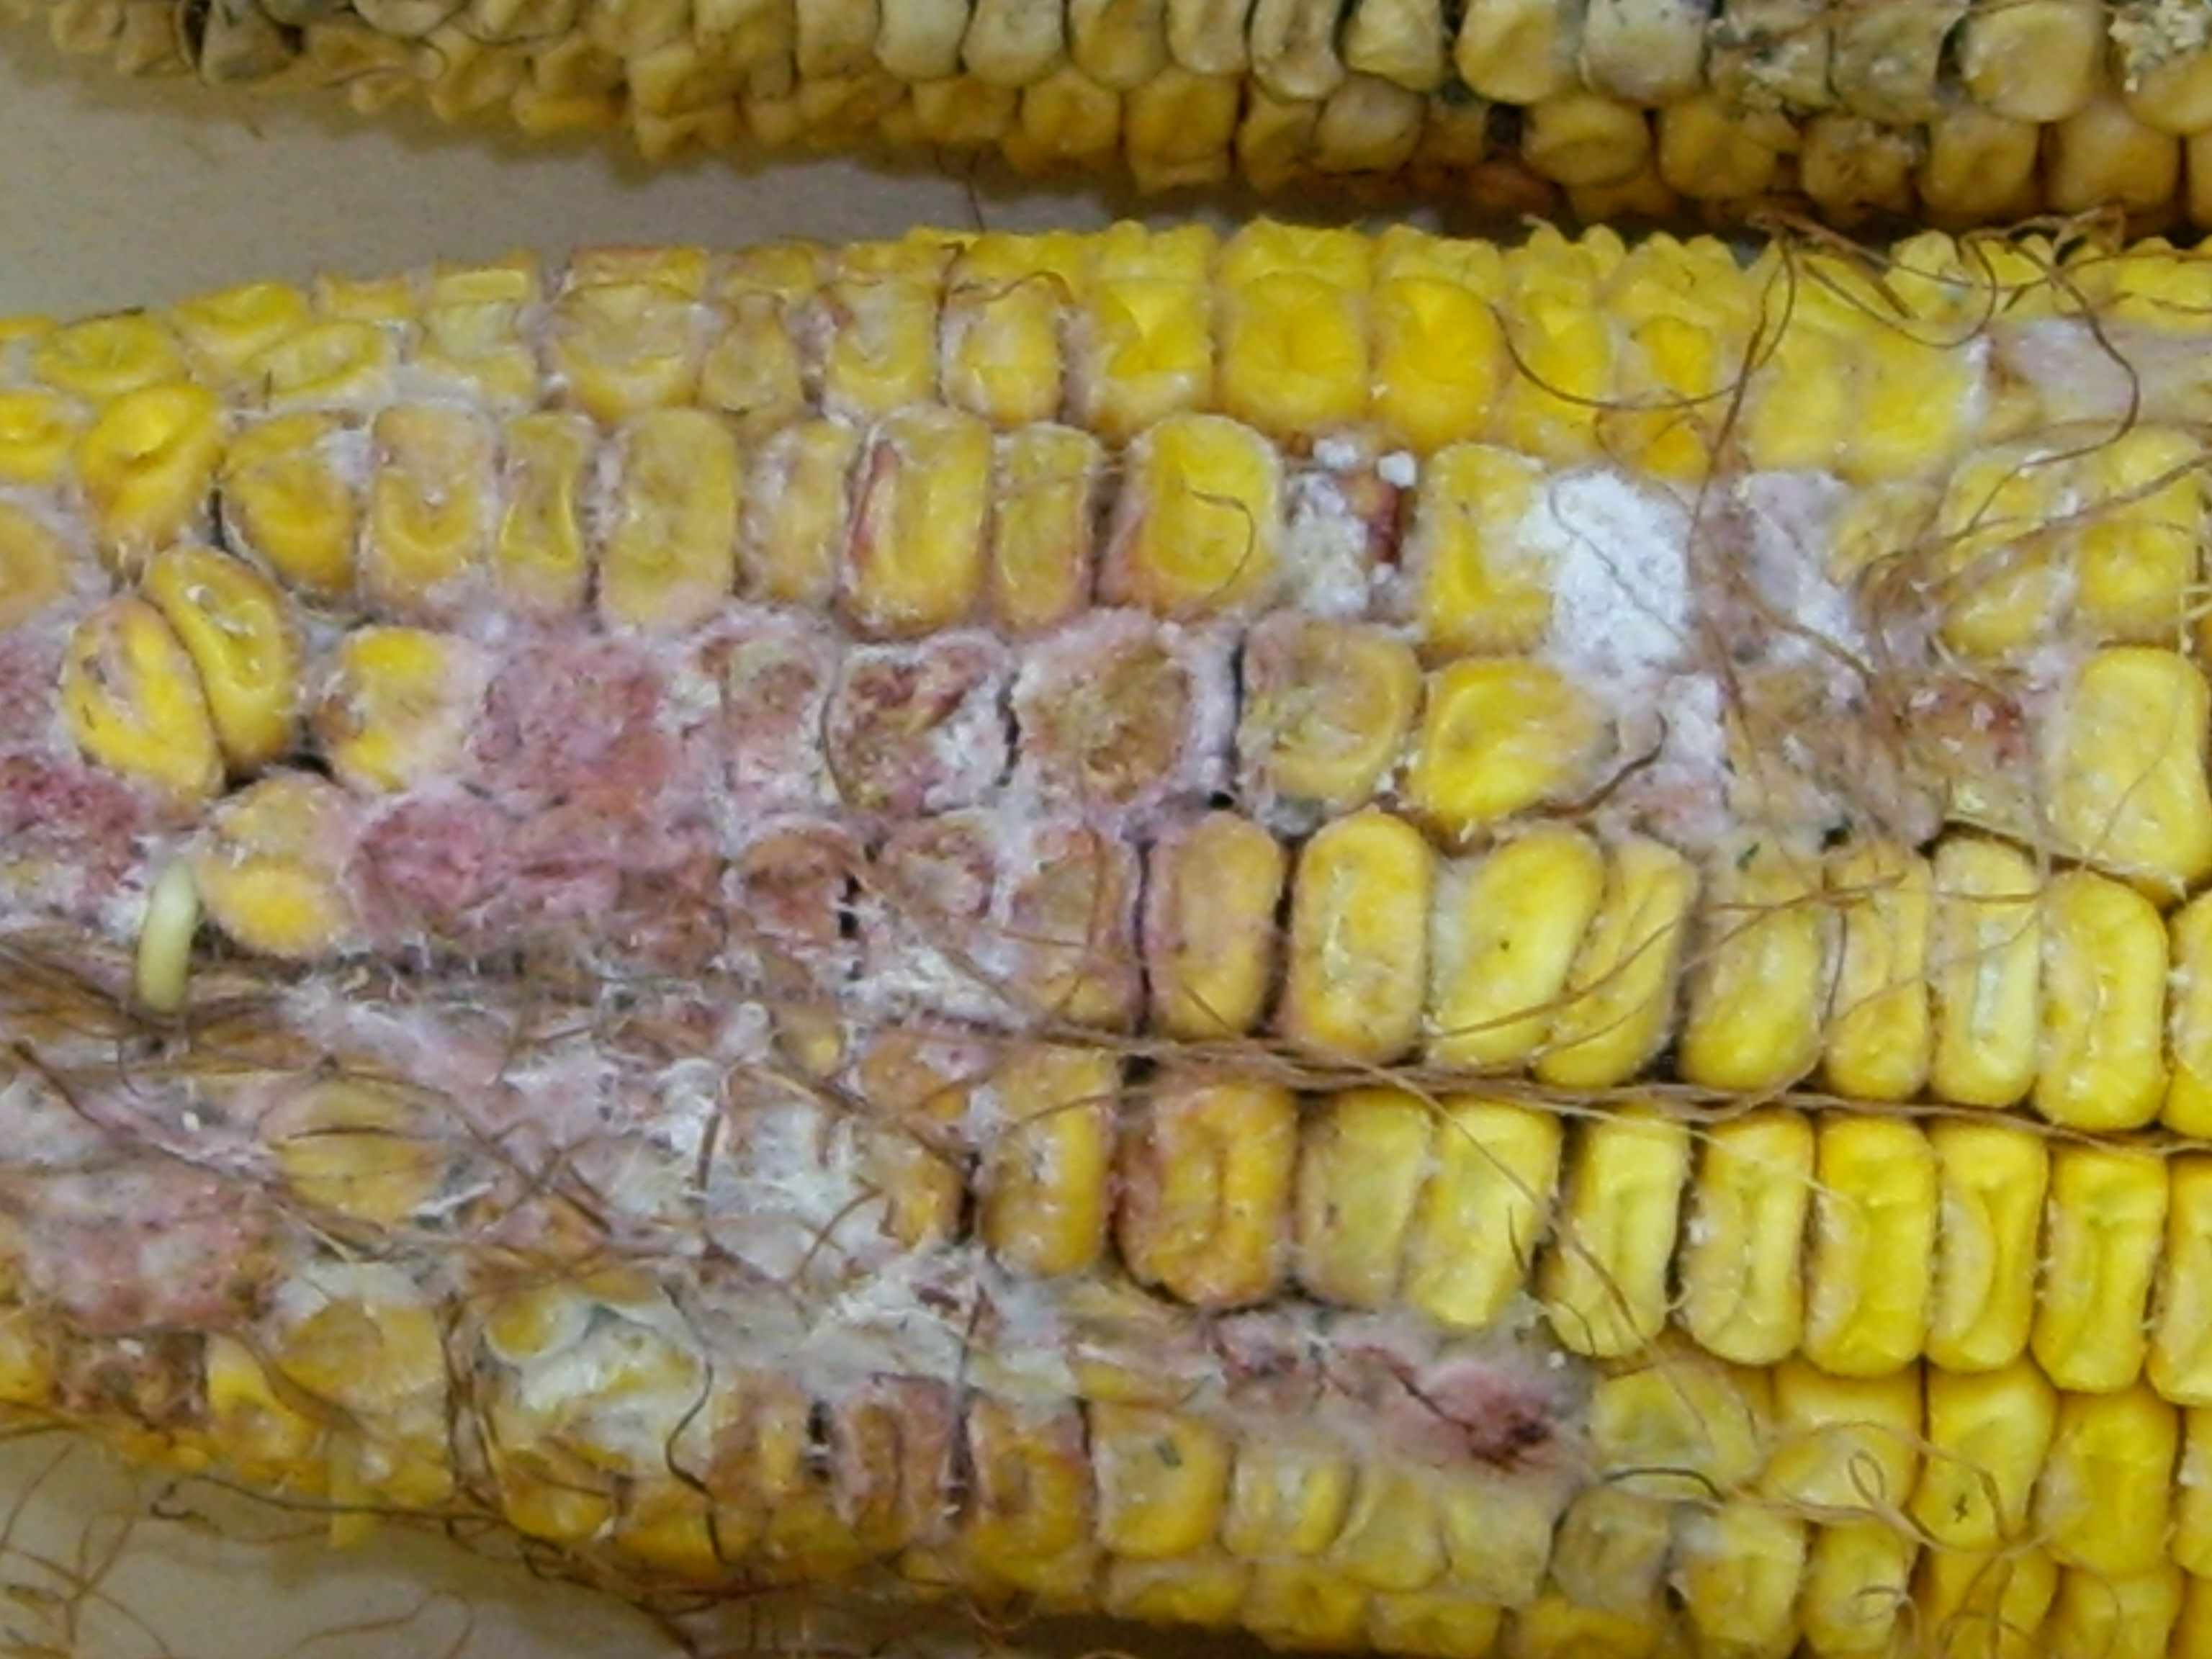 Gibberella ear rot on hail damaged ear.